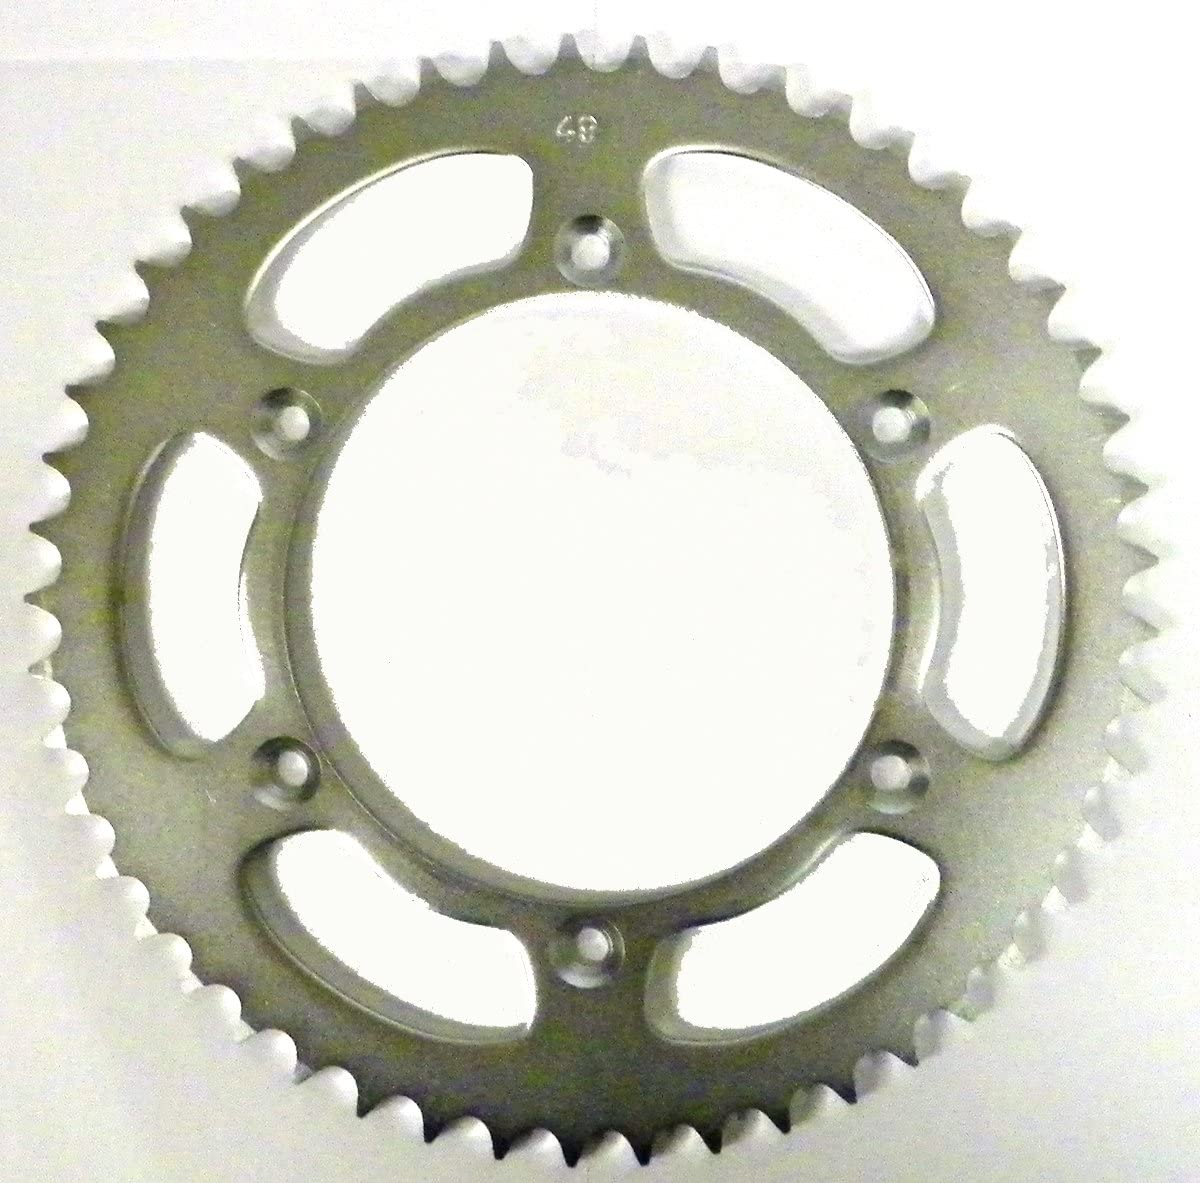 250 CC O-Ring Chain And Sprocket Kit Fits Suzuki RM 250 1978